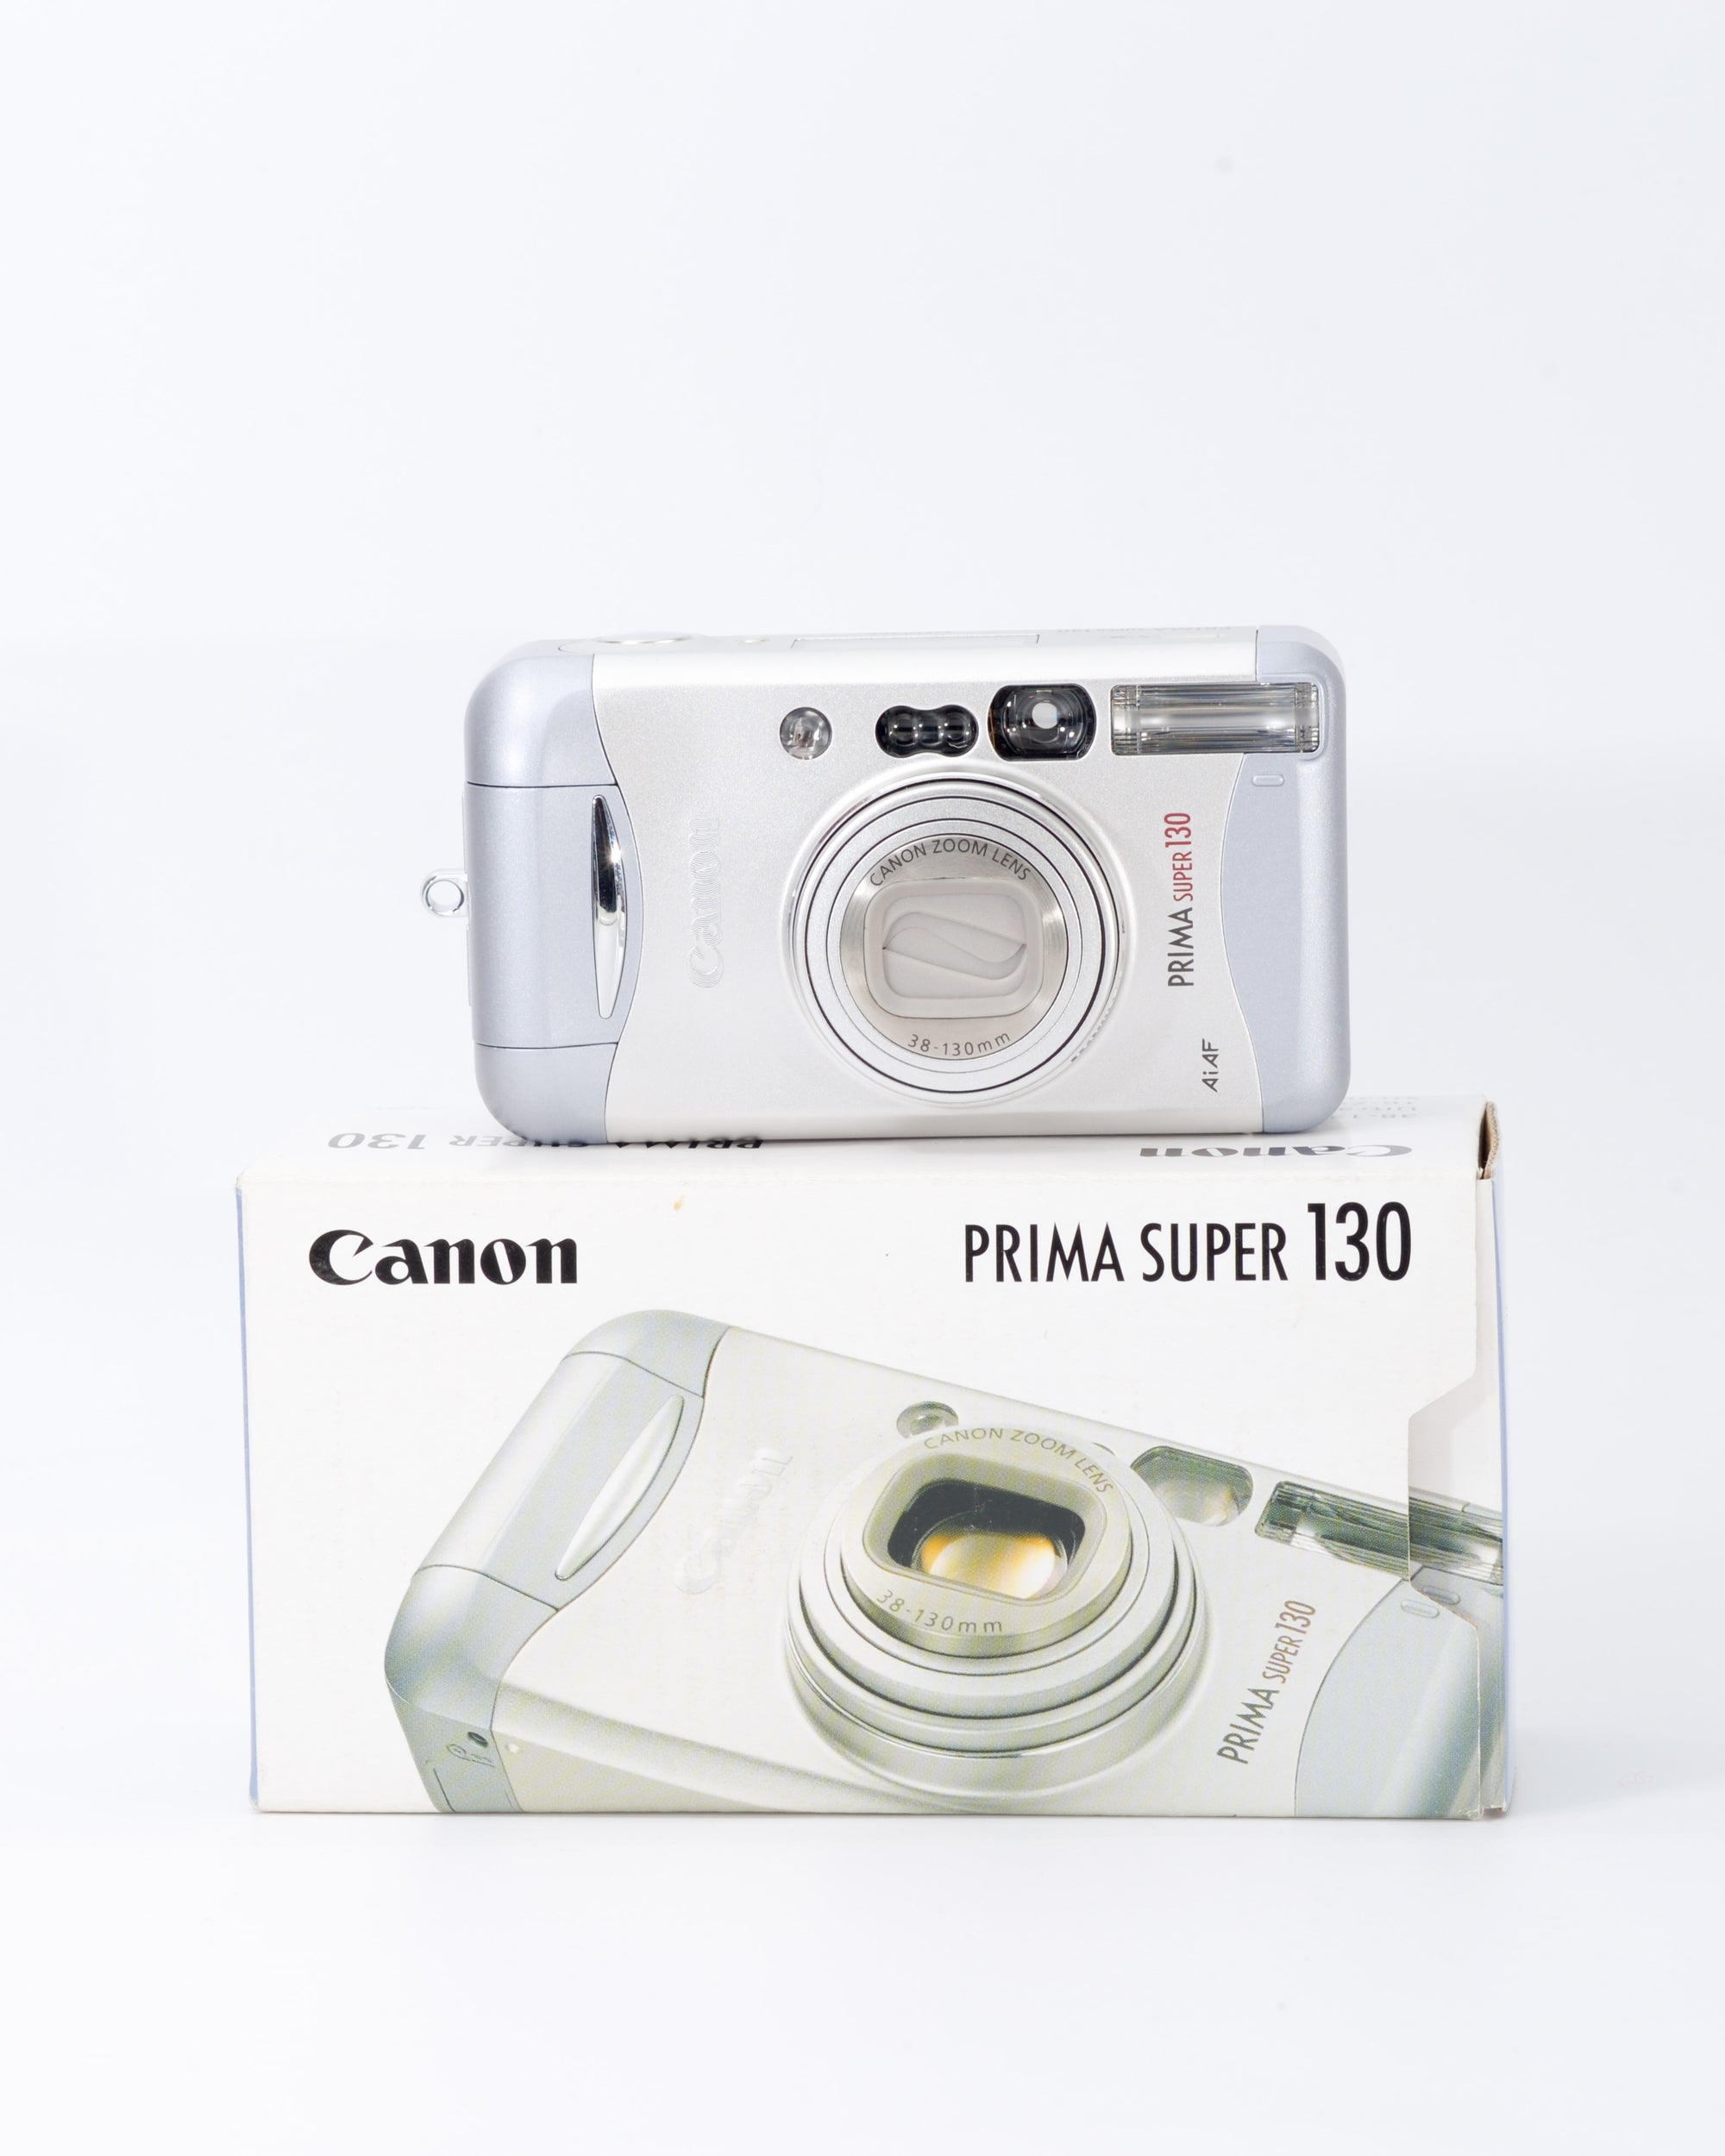 Canon Prima Super 130 35mm Point & Shoot Film Camera with 38-130mm Lens